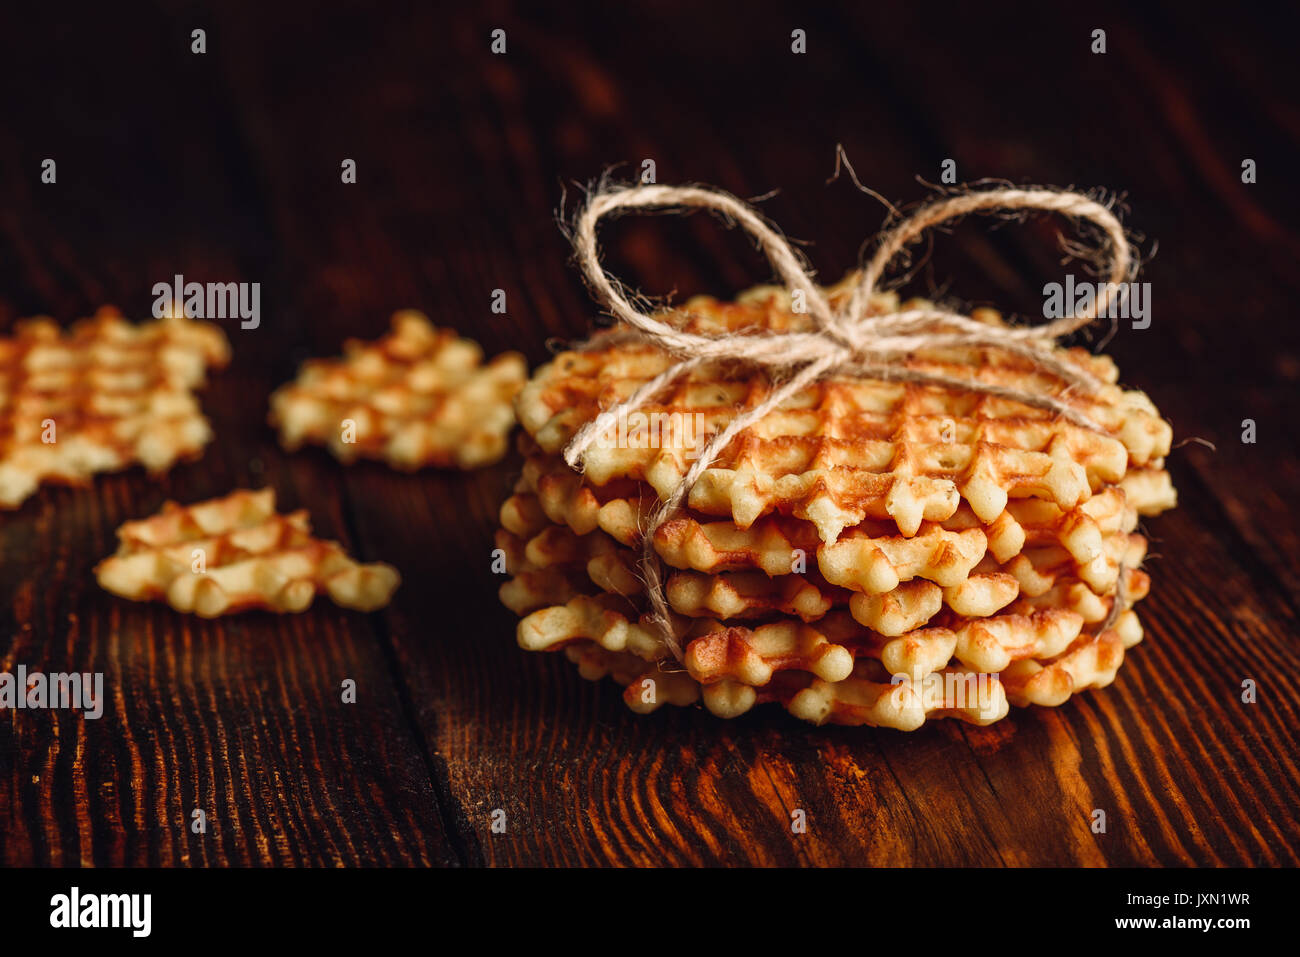 Belgian Waffles Stack with Pieces of Waffle. Stock Photo